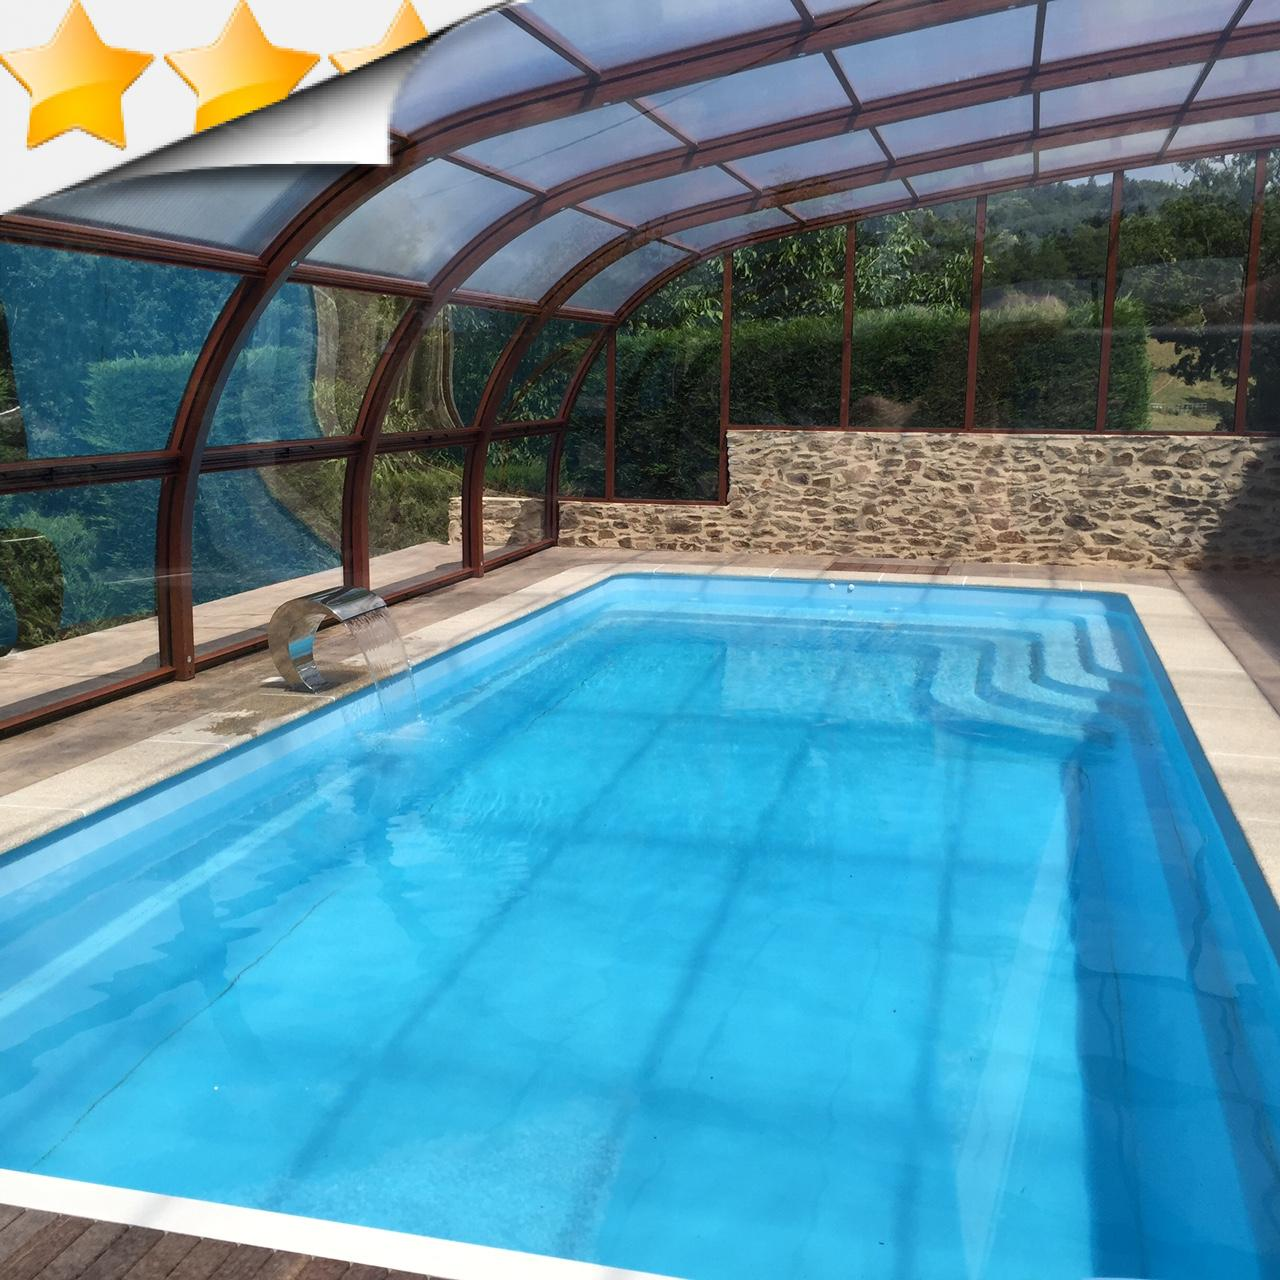 Abri piscine discount awesome nouvelle gamme duabris de for Abri piscine promotion